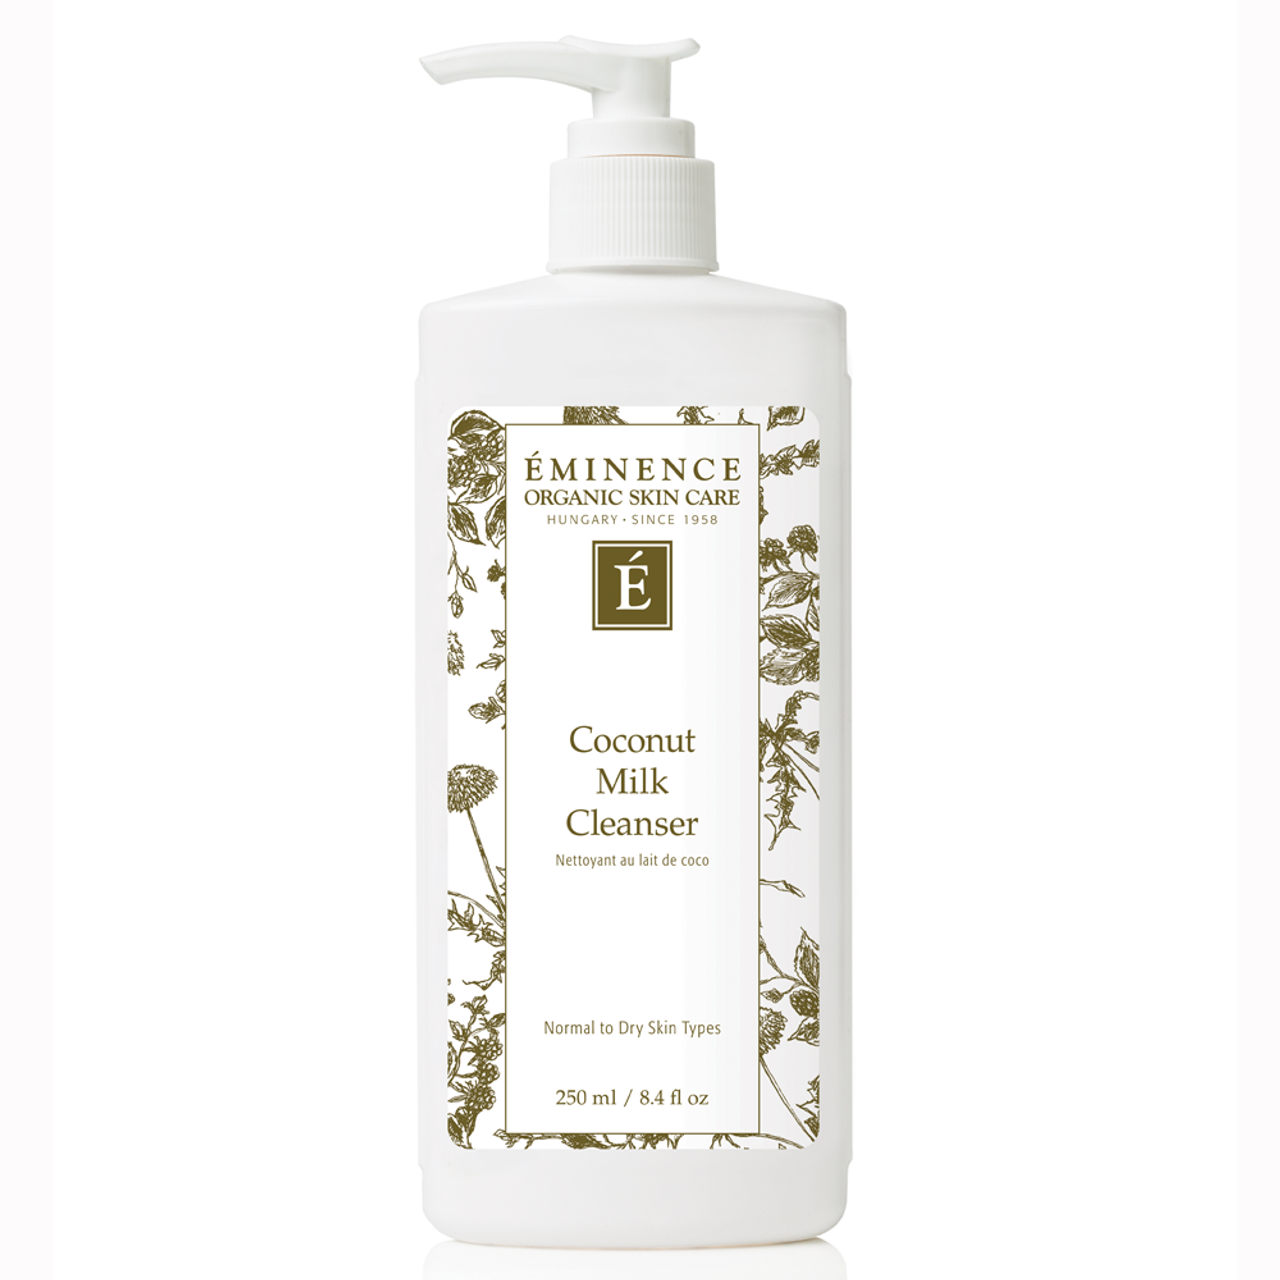 Eminence Coconut Milk Cleanser